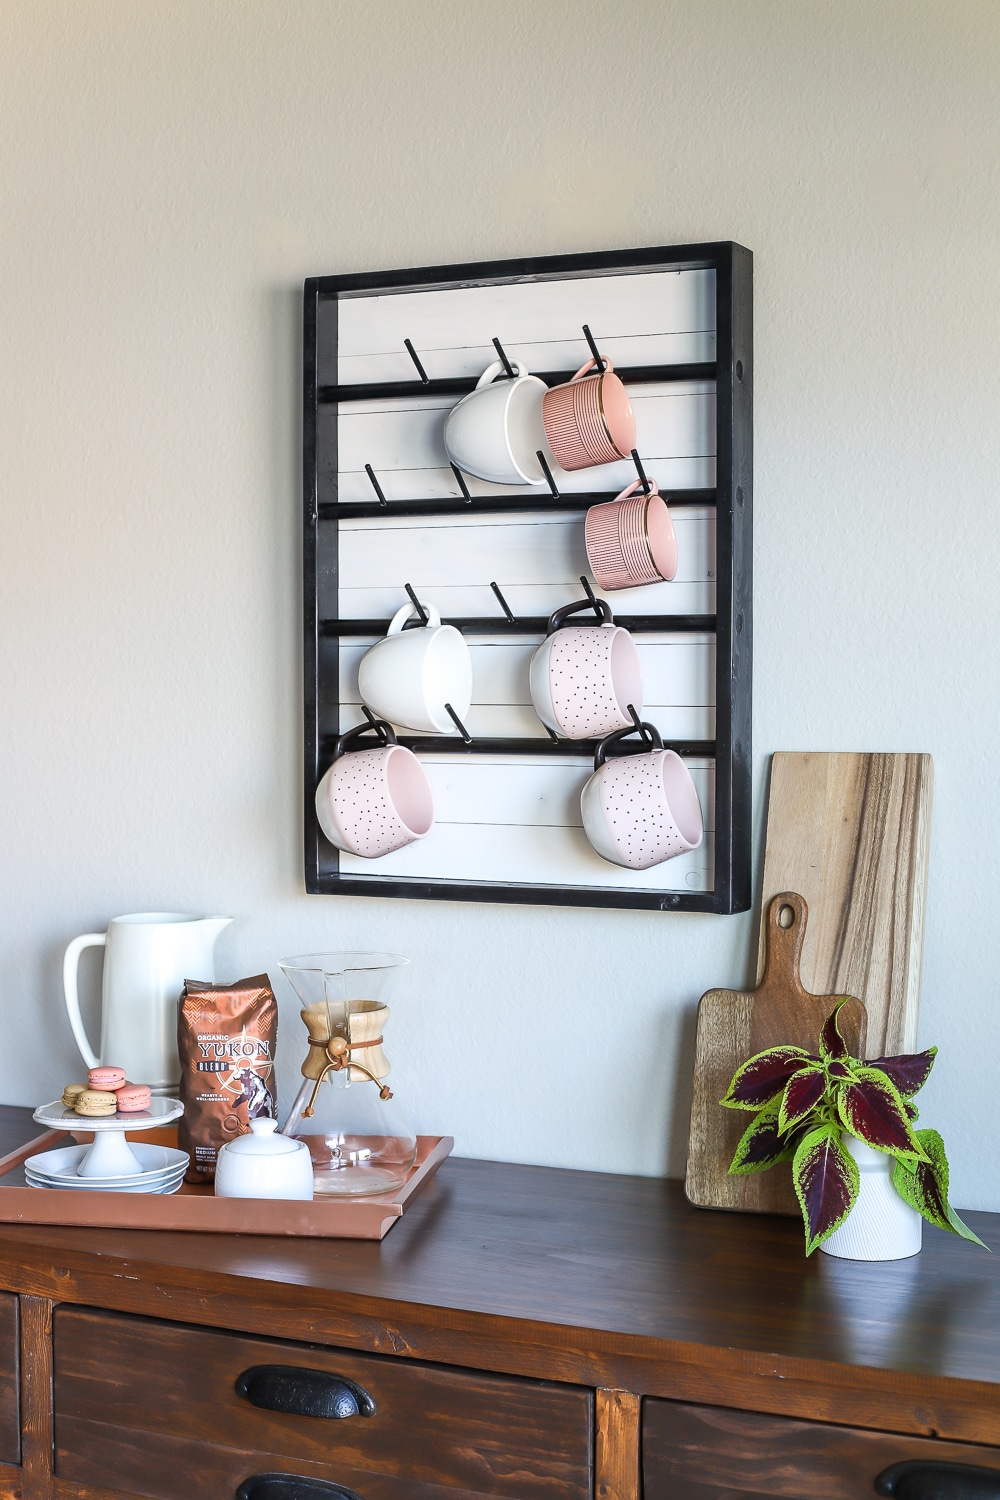 How To Make A Diy Wall Mounted Coffee Mug Display Rack